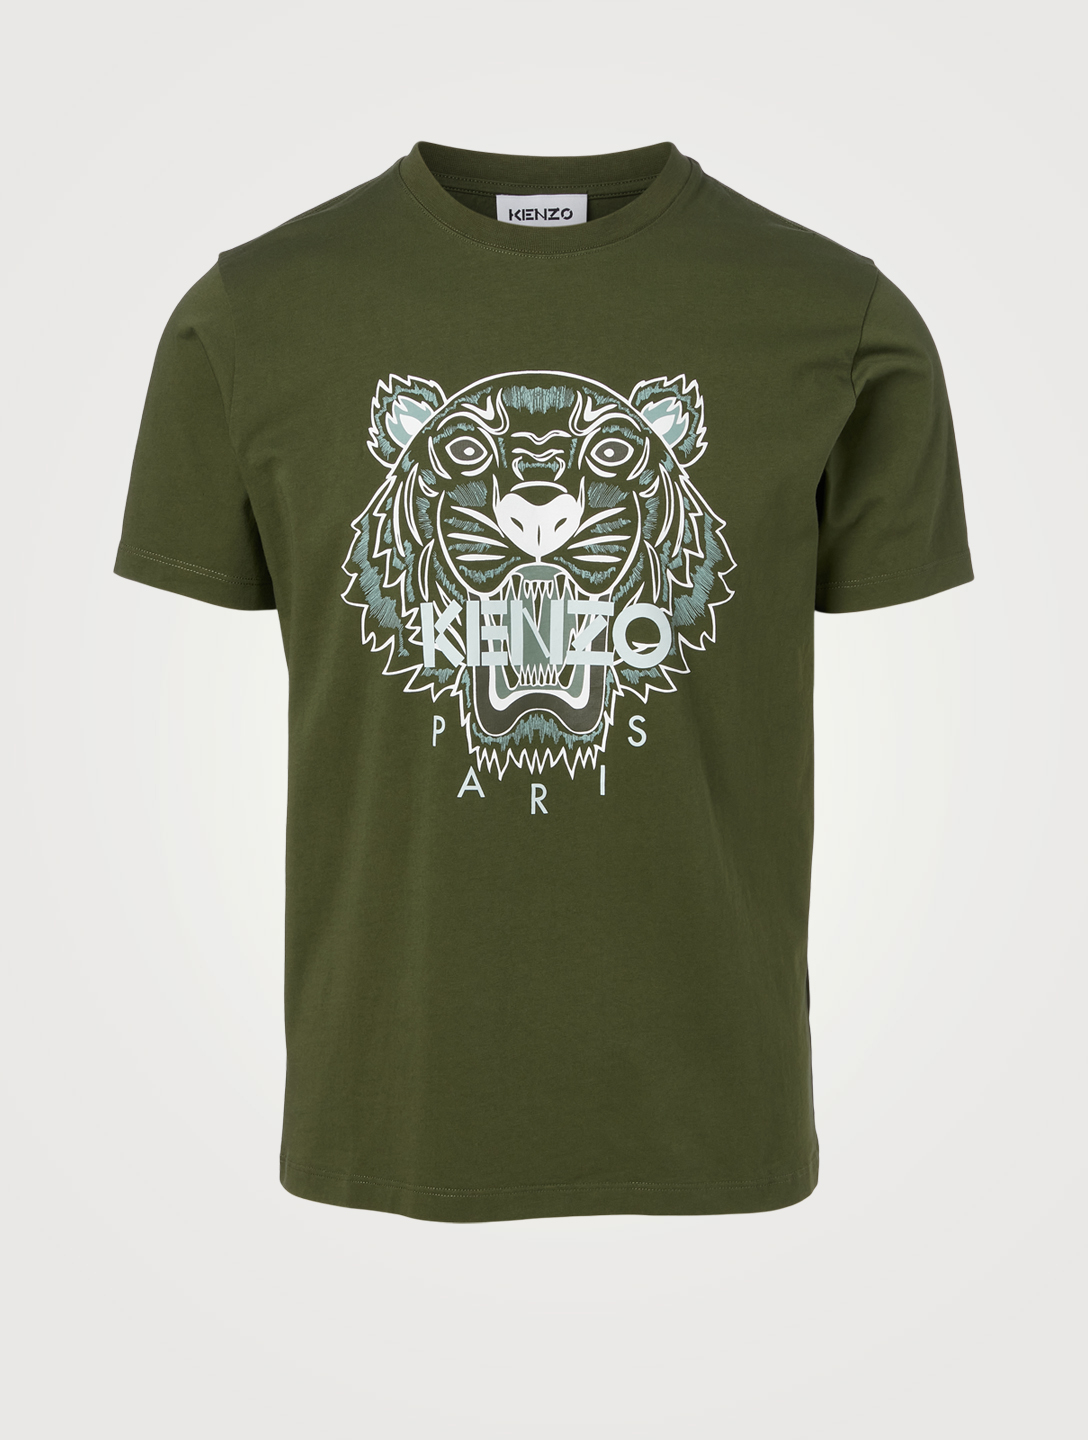 KENZO Tiger Cotton T-Shirt Men's Beige